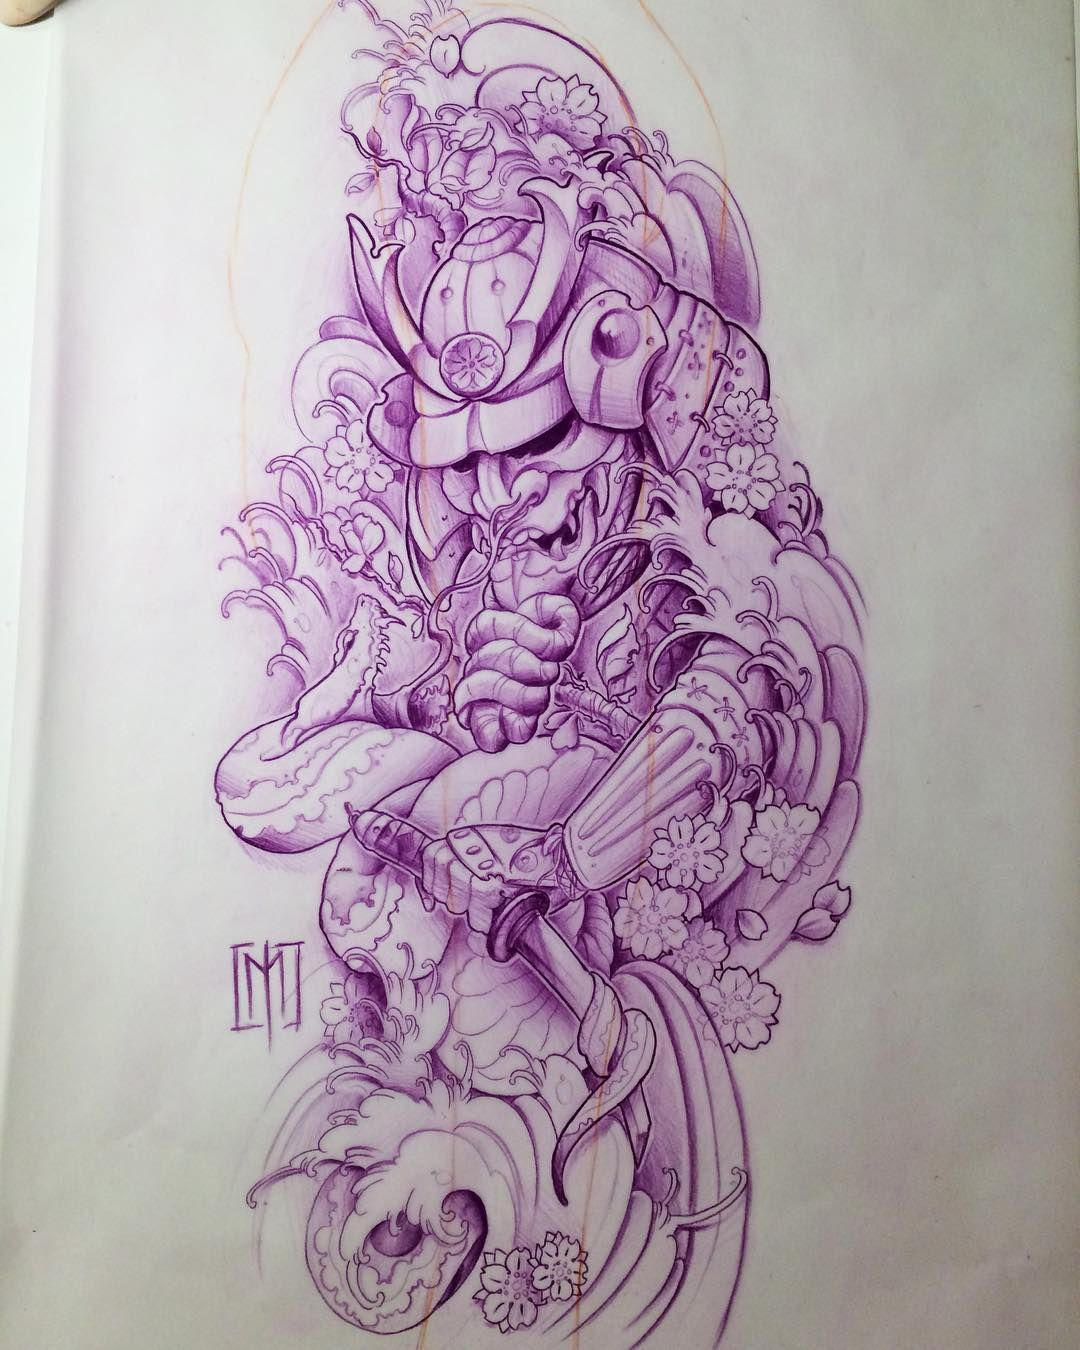 992 Likes 10 Comments Jaromir Mucowski Sideusz On Instagram Sleeve Design Already Booked T Japanese Tattoo Art Samurai Tattoo Design Japanese Tattoo